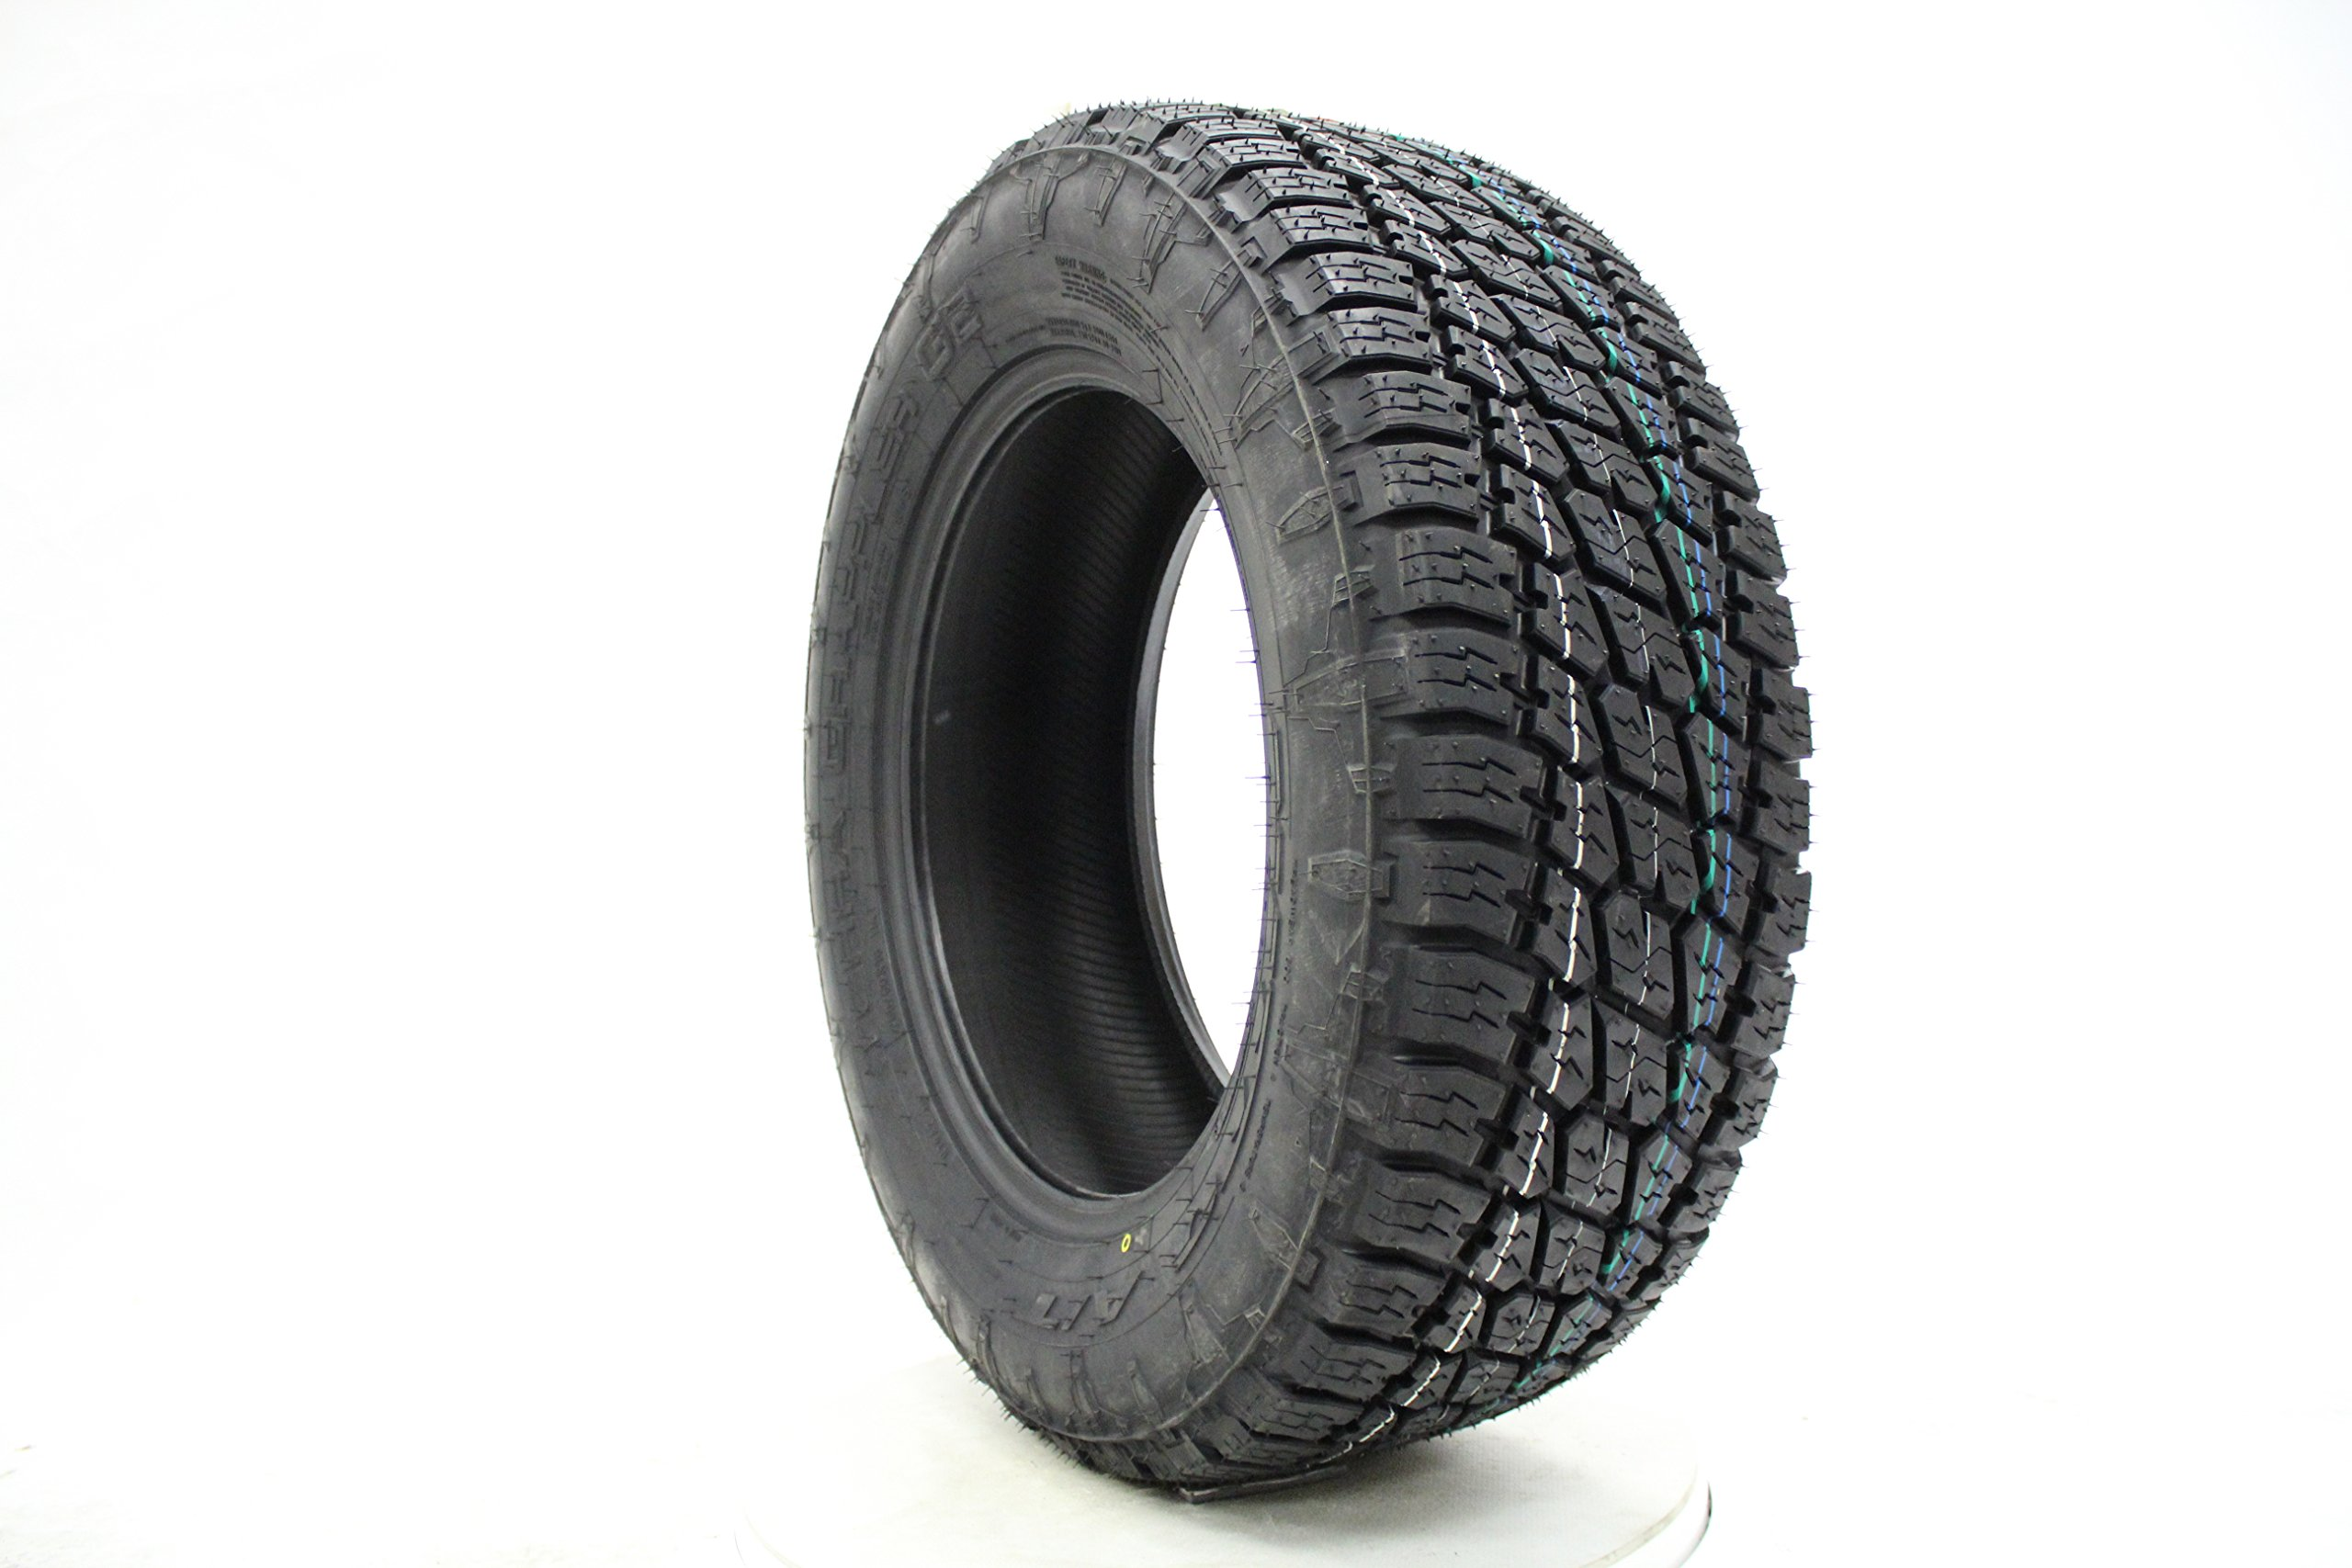 Nitto Terra Grappler G2 Traction Radial Tire – 275/65R18 116T